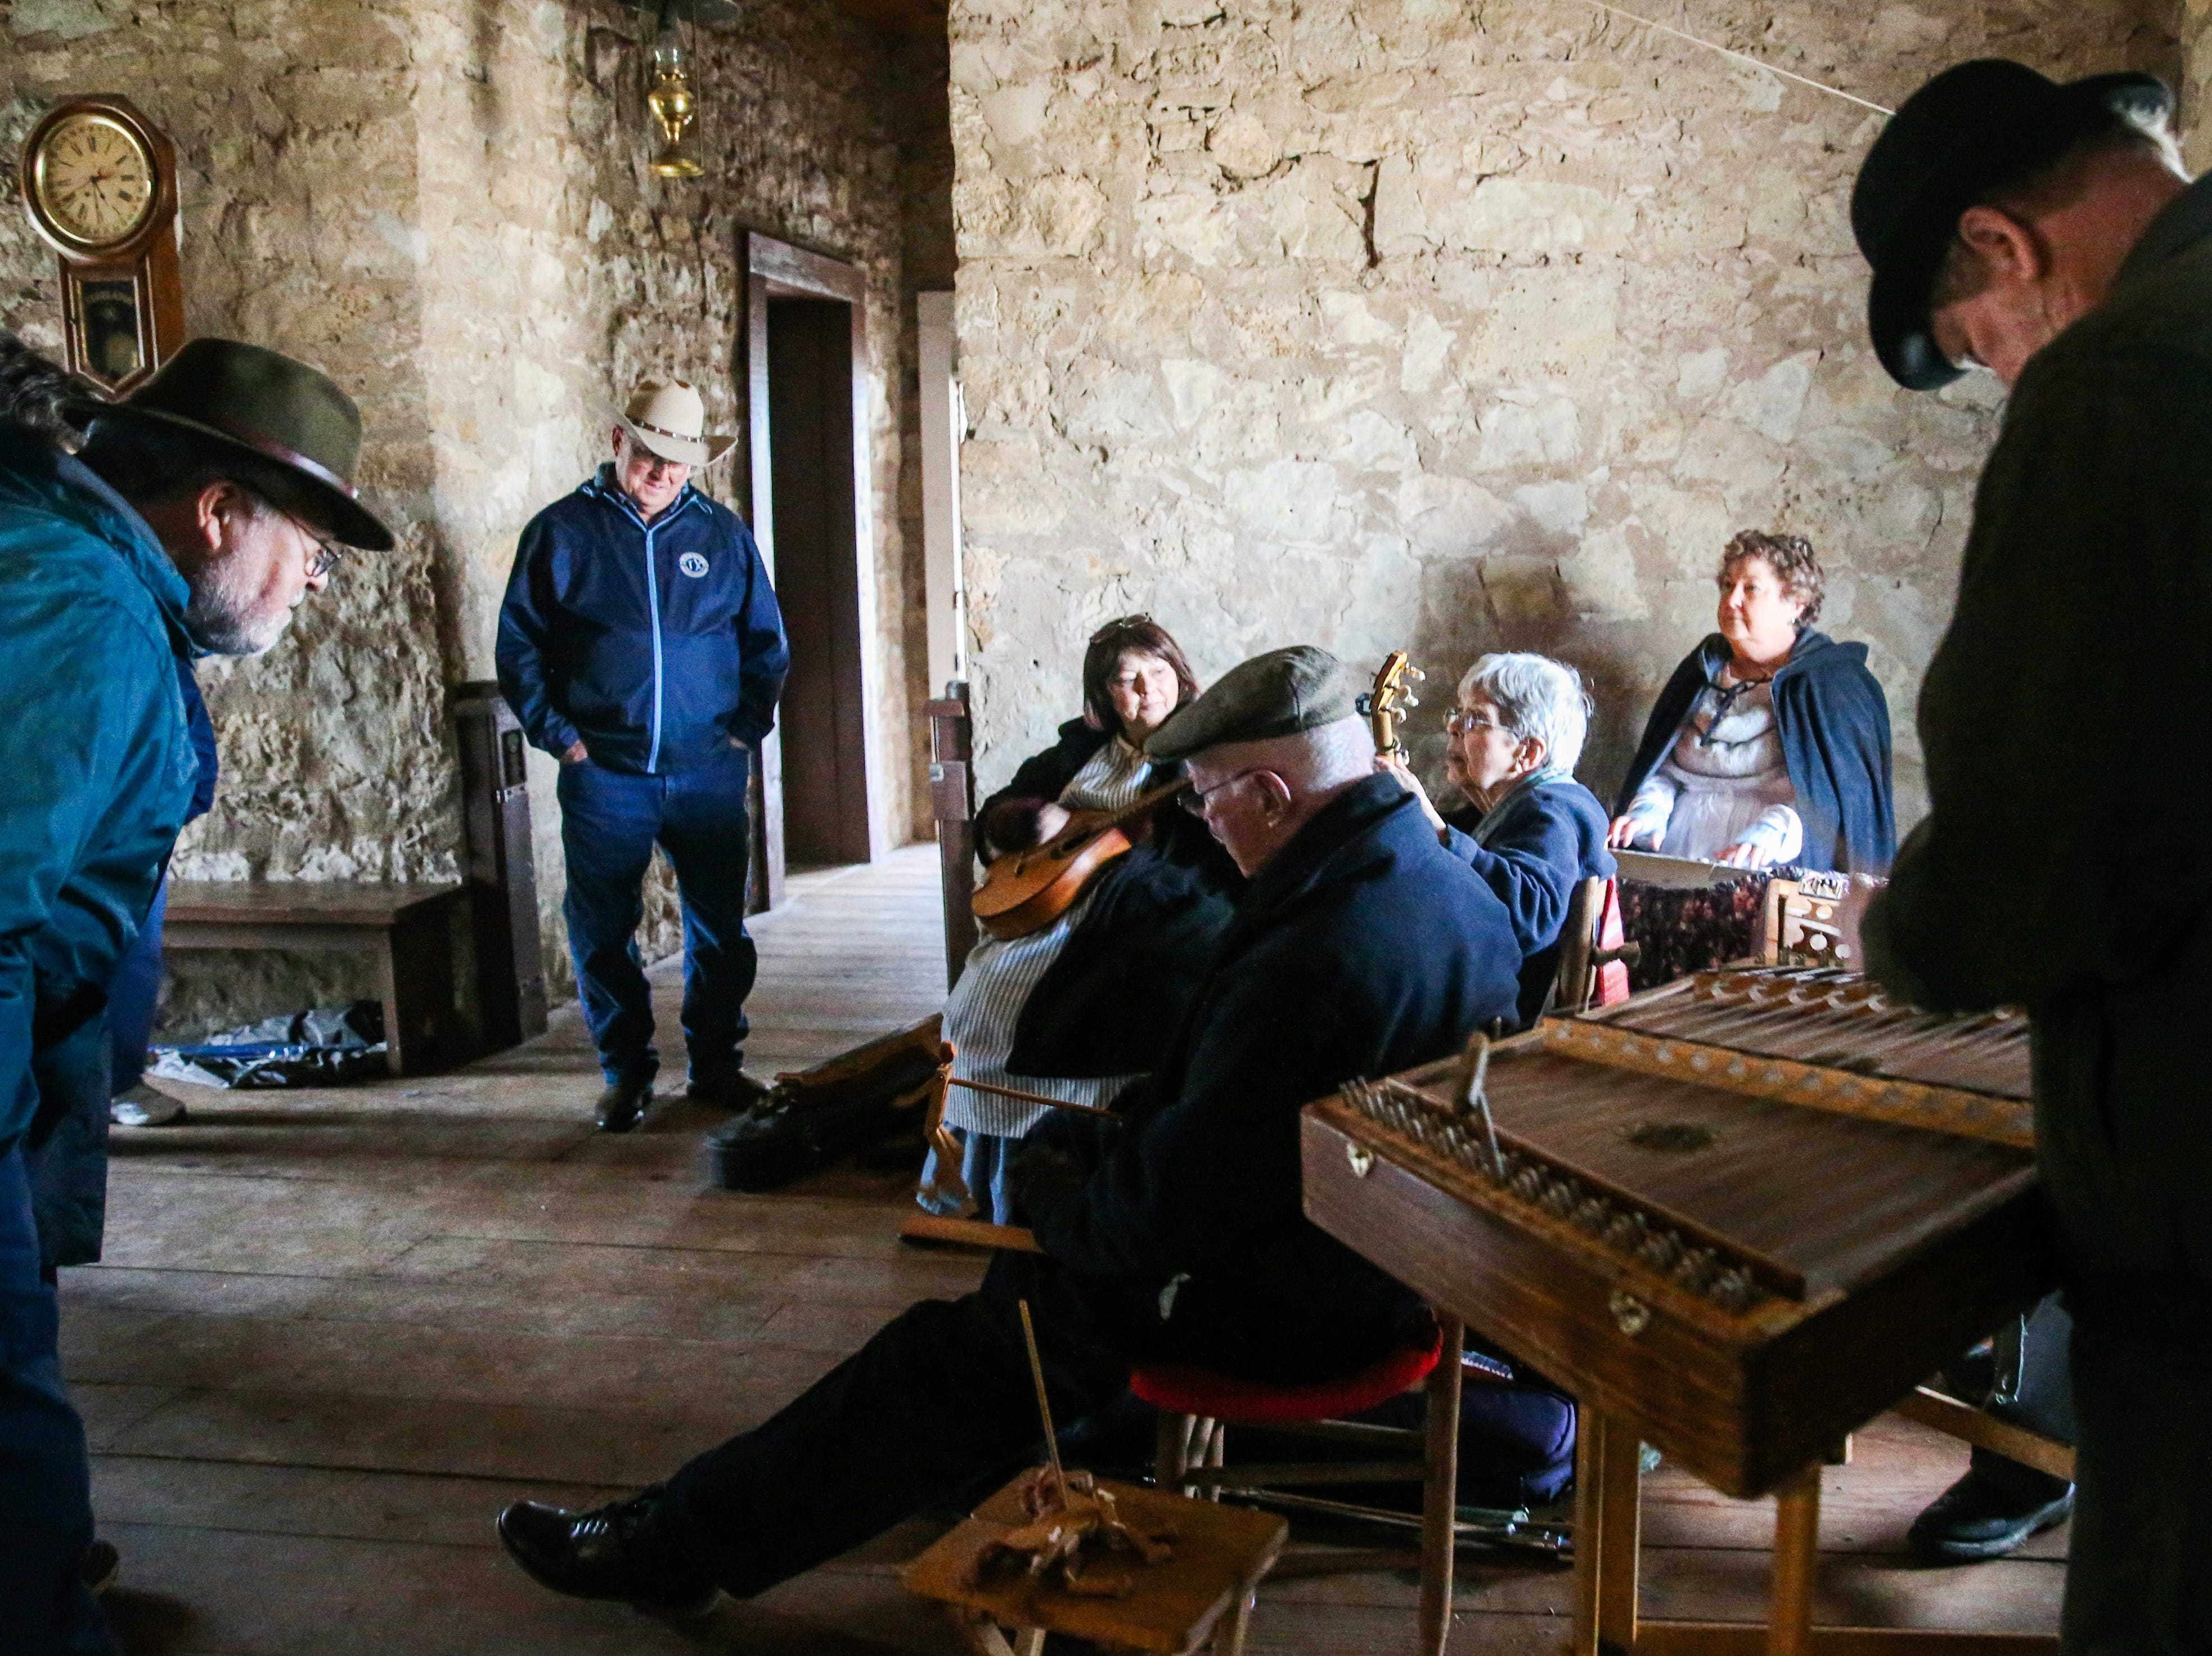 Musicians entertain the crowd in a fort building Friday, Dec. 7, 2018, during Christmas at Old Fort Concho.